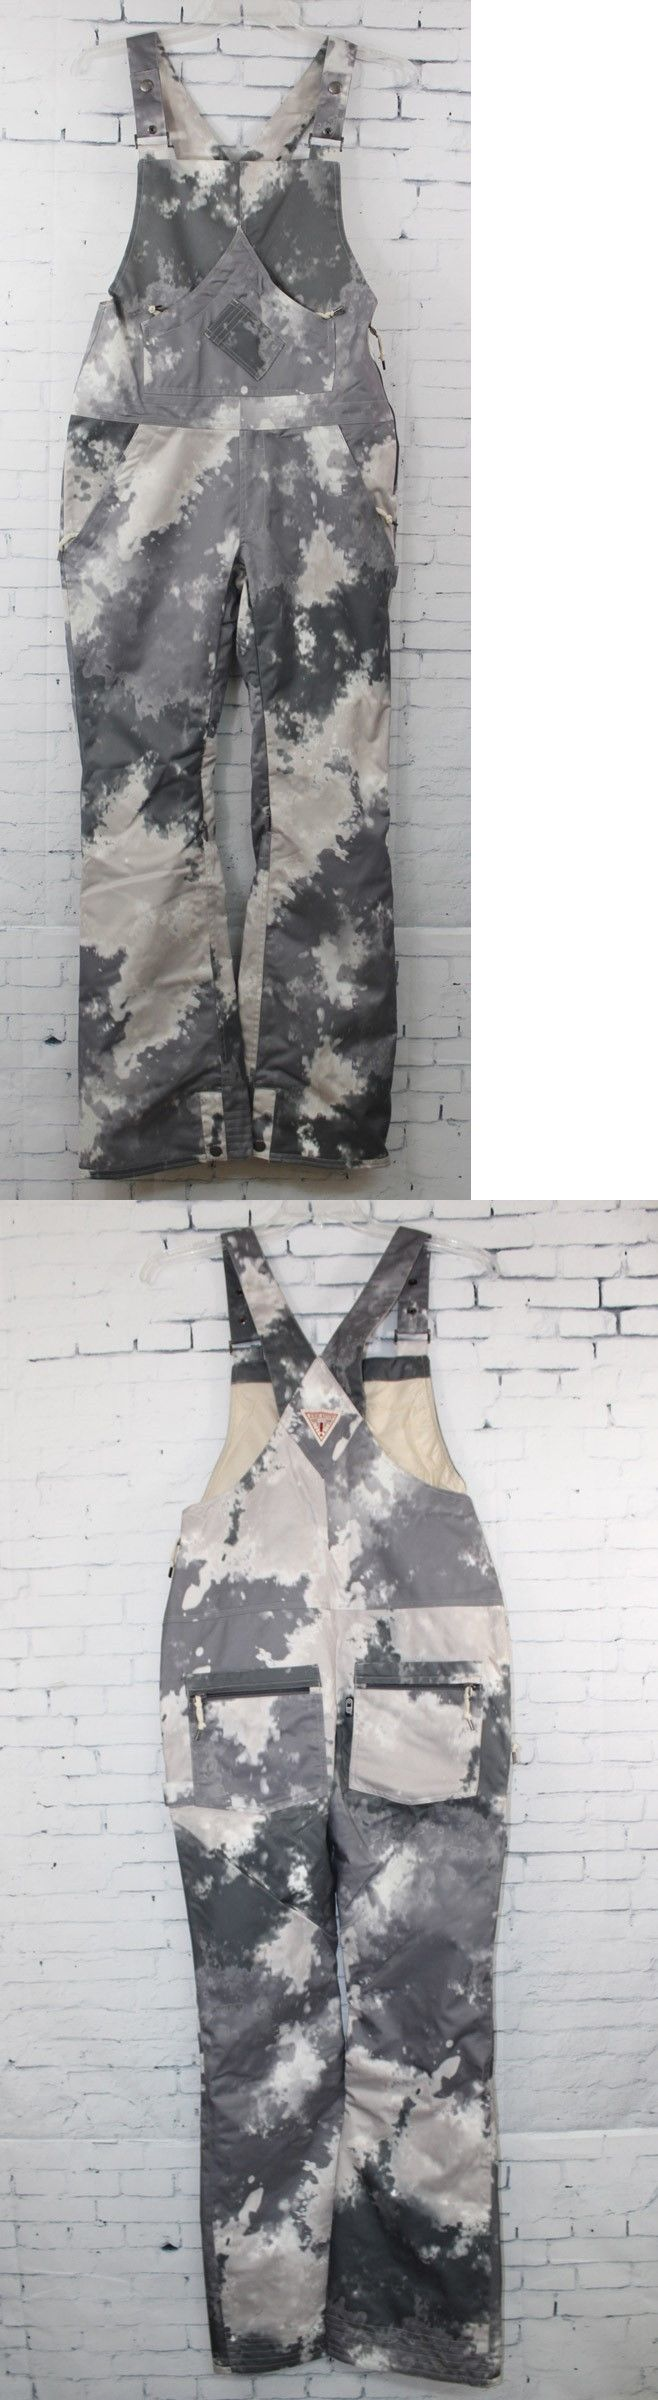 Snow Pants and Bibs 36261: New 2016 Airblaster Womens Hot Overall Ski Snowboard Bib Pants Med Storm Cloud -> BUY IT NOW ONLY: $179.96 on eBay!